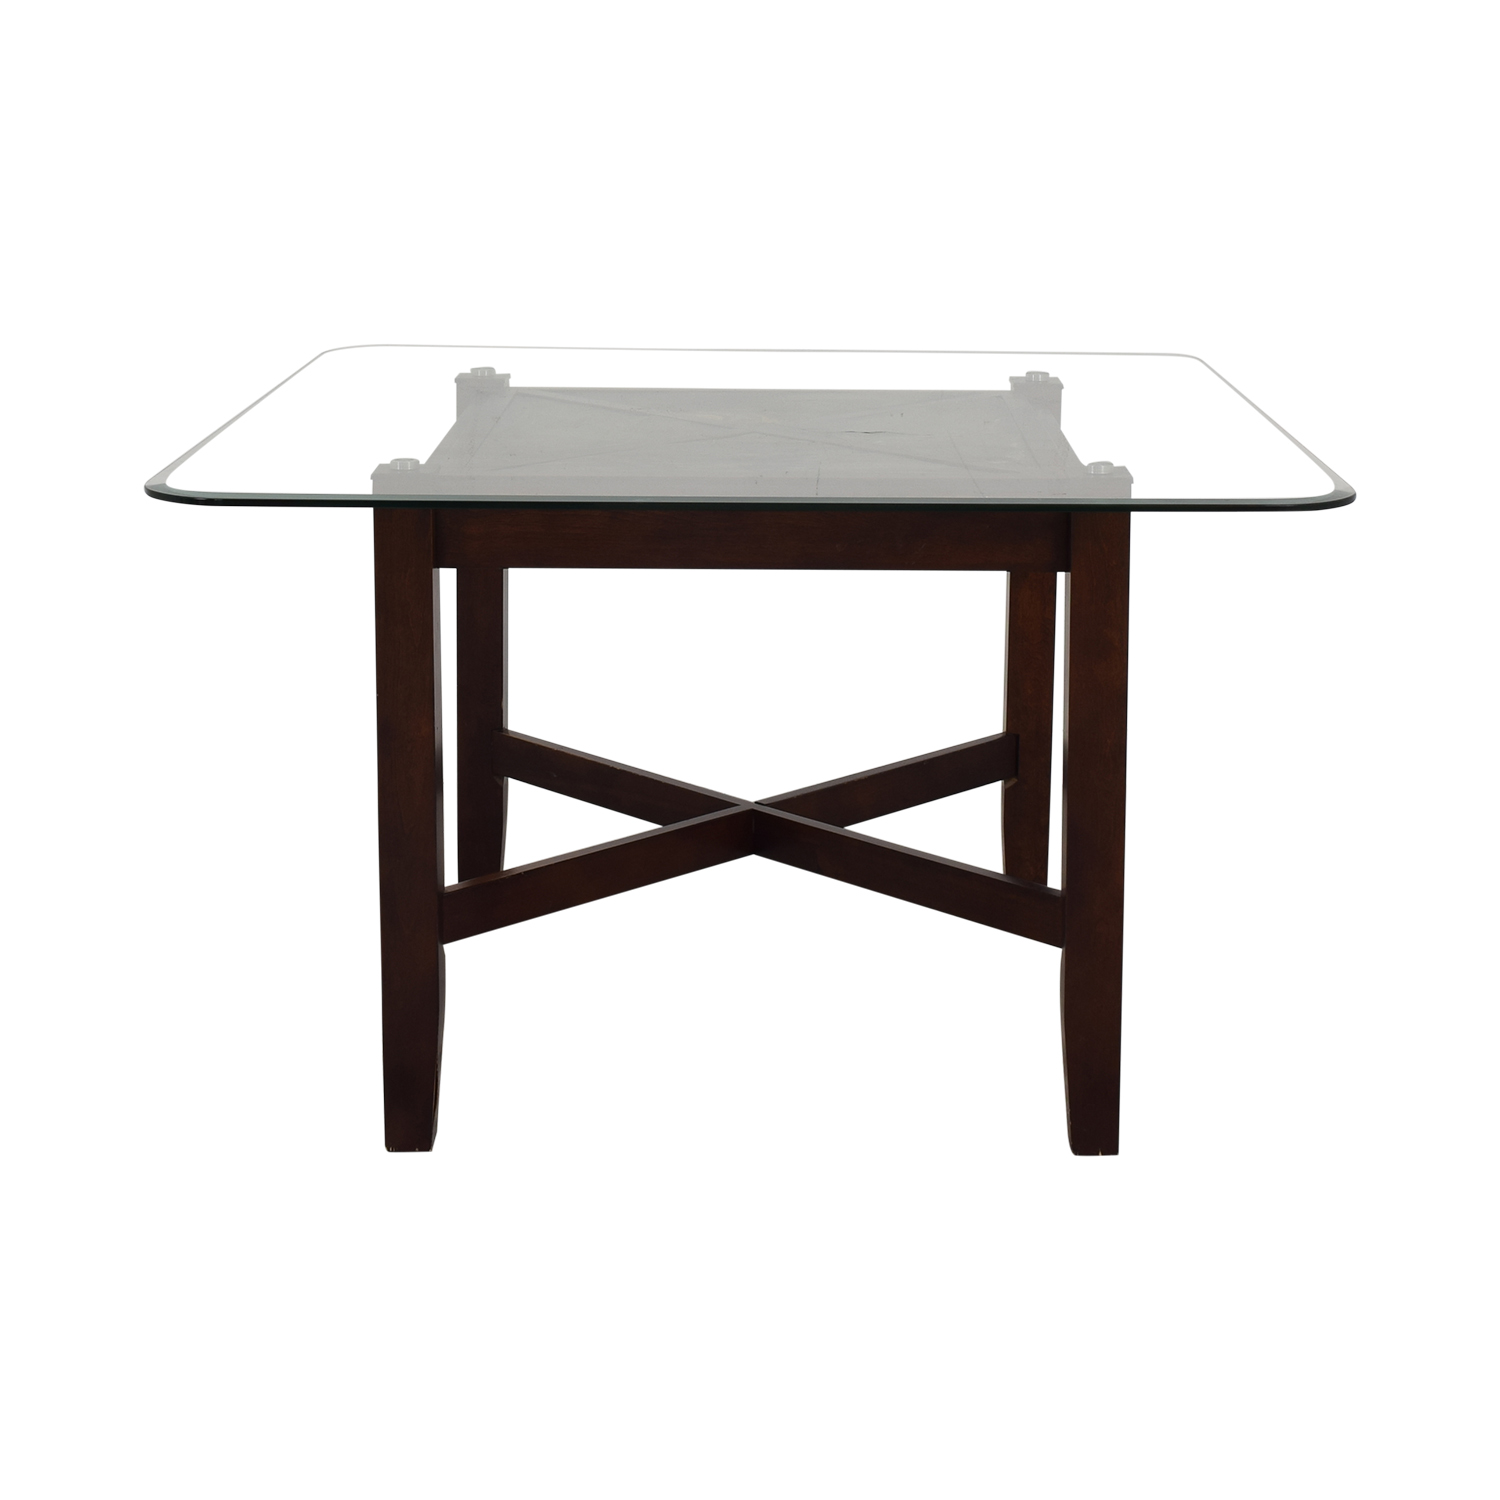 Raymour & Flanigan Raymour & Flanigan Glass Top Dining Table on sale